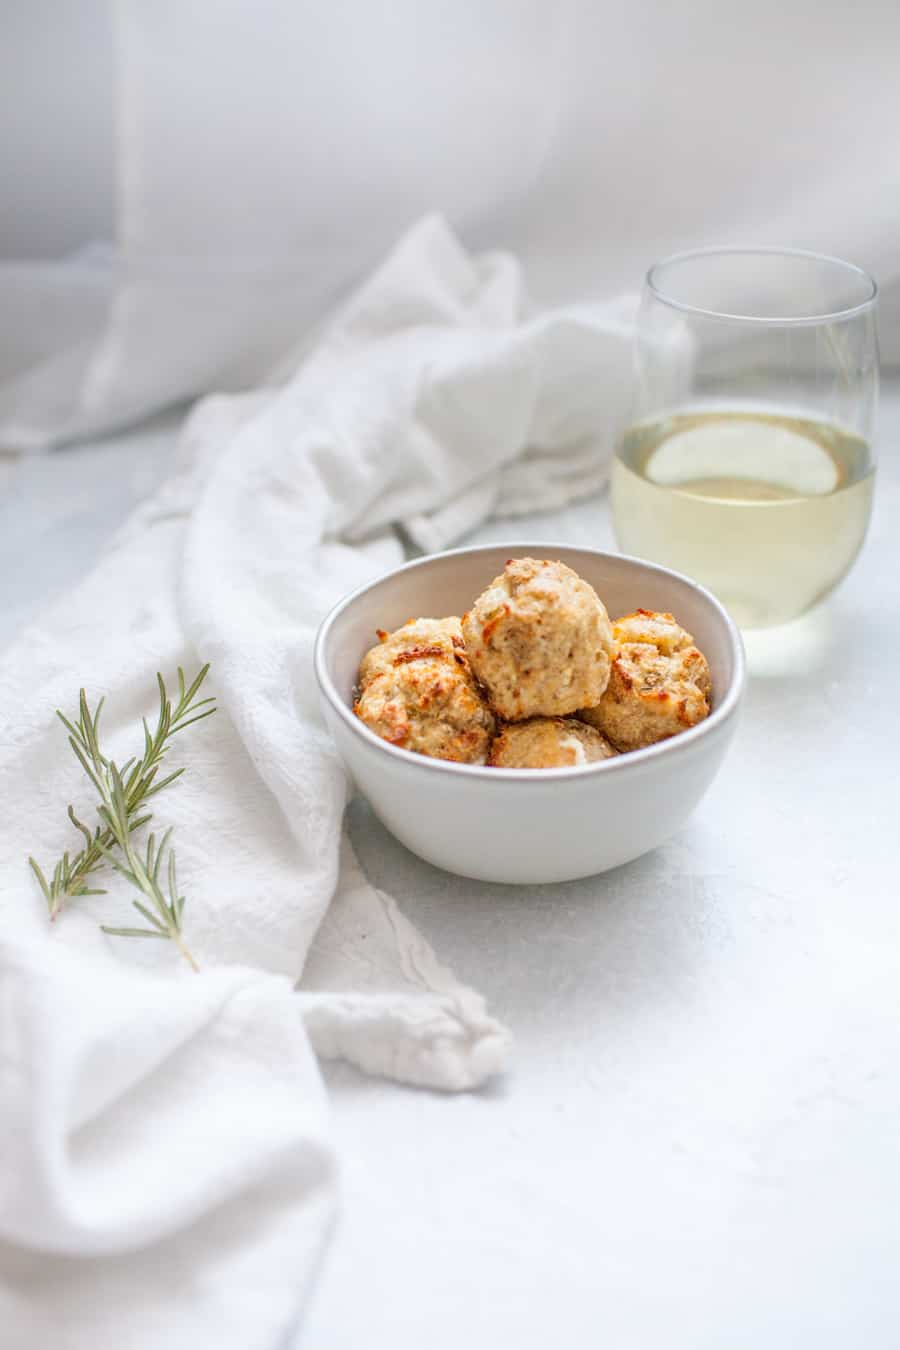 Goat Cheese Rosemary Baked Chicken Meatballs are a perfect game day appetizer! These meatballs are made with ground chicken, fresh rosemary and creamy goat cheese and come together in under 30 minutes. They can also be the perfect protein for dinner, served over a salad, rice or pasta. Enjoy these baked chicken meatballs while sipping on a glass of Trivento Wine!